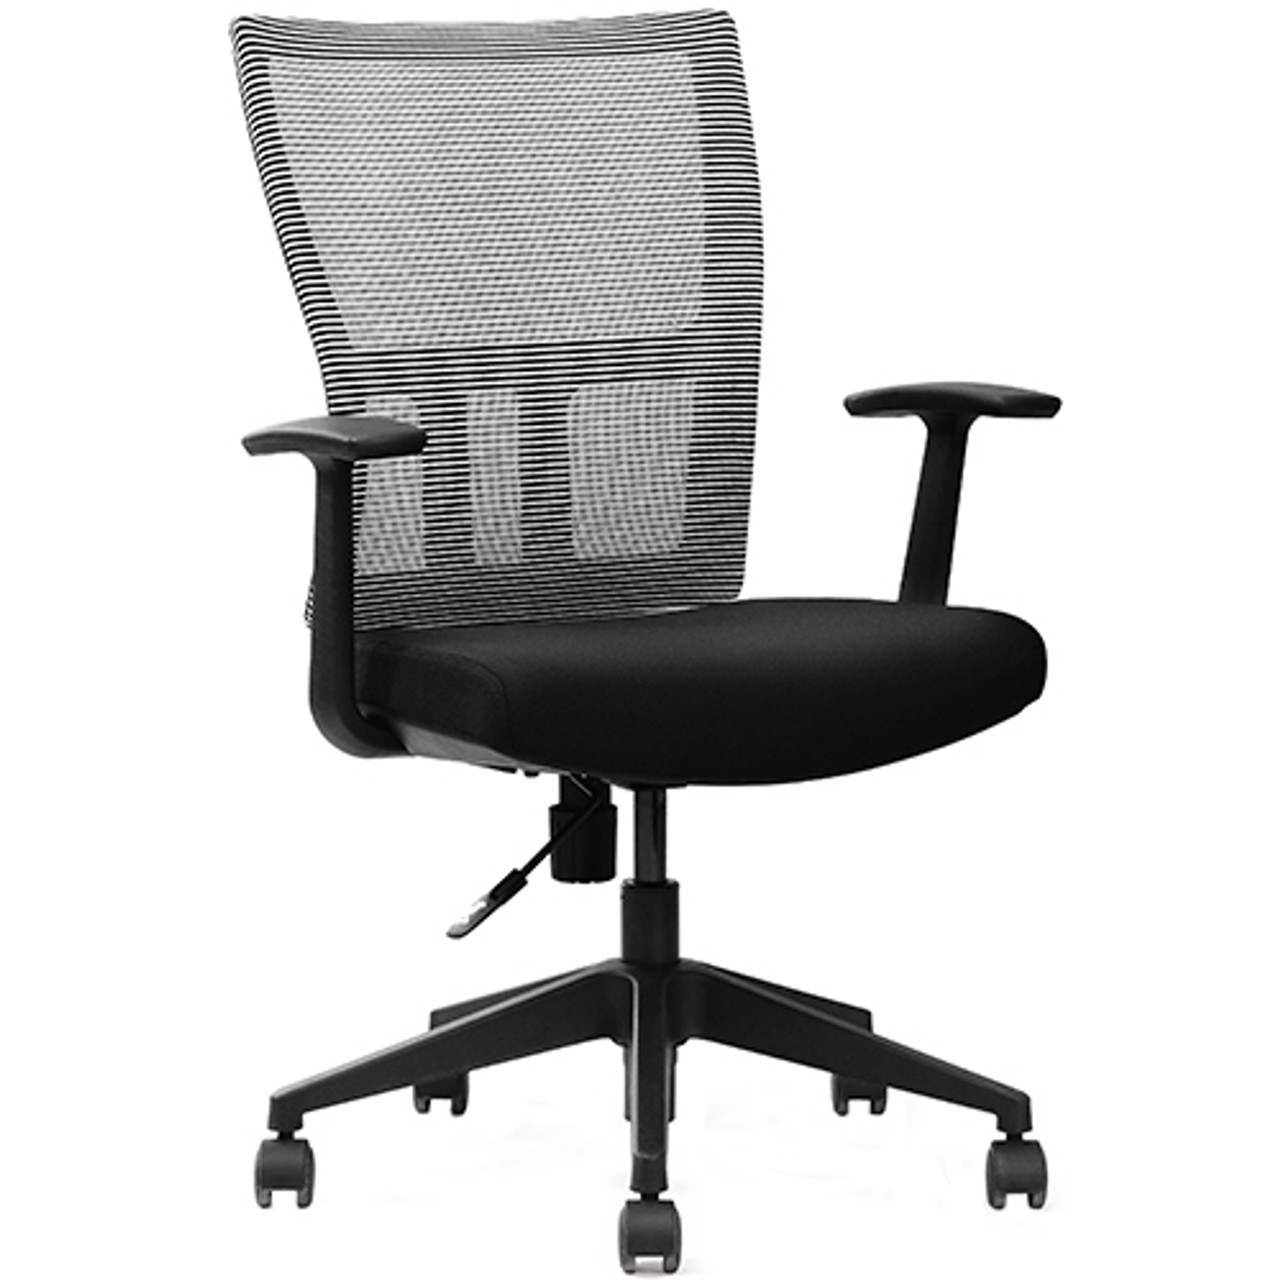 Advantage Black Mesh Office Chairs M1 Be